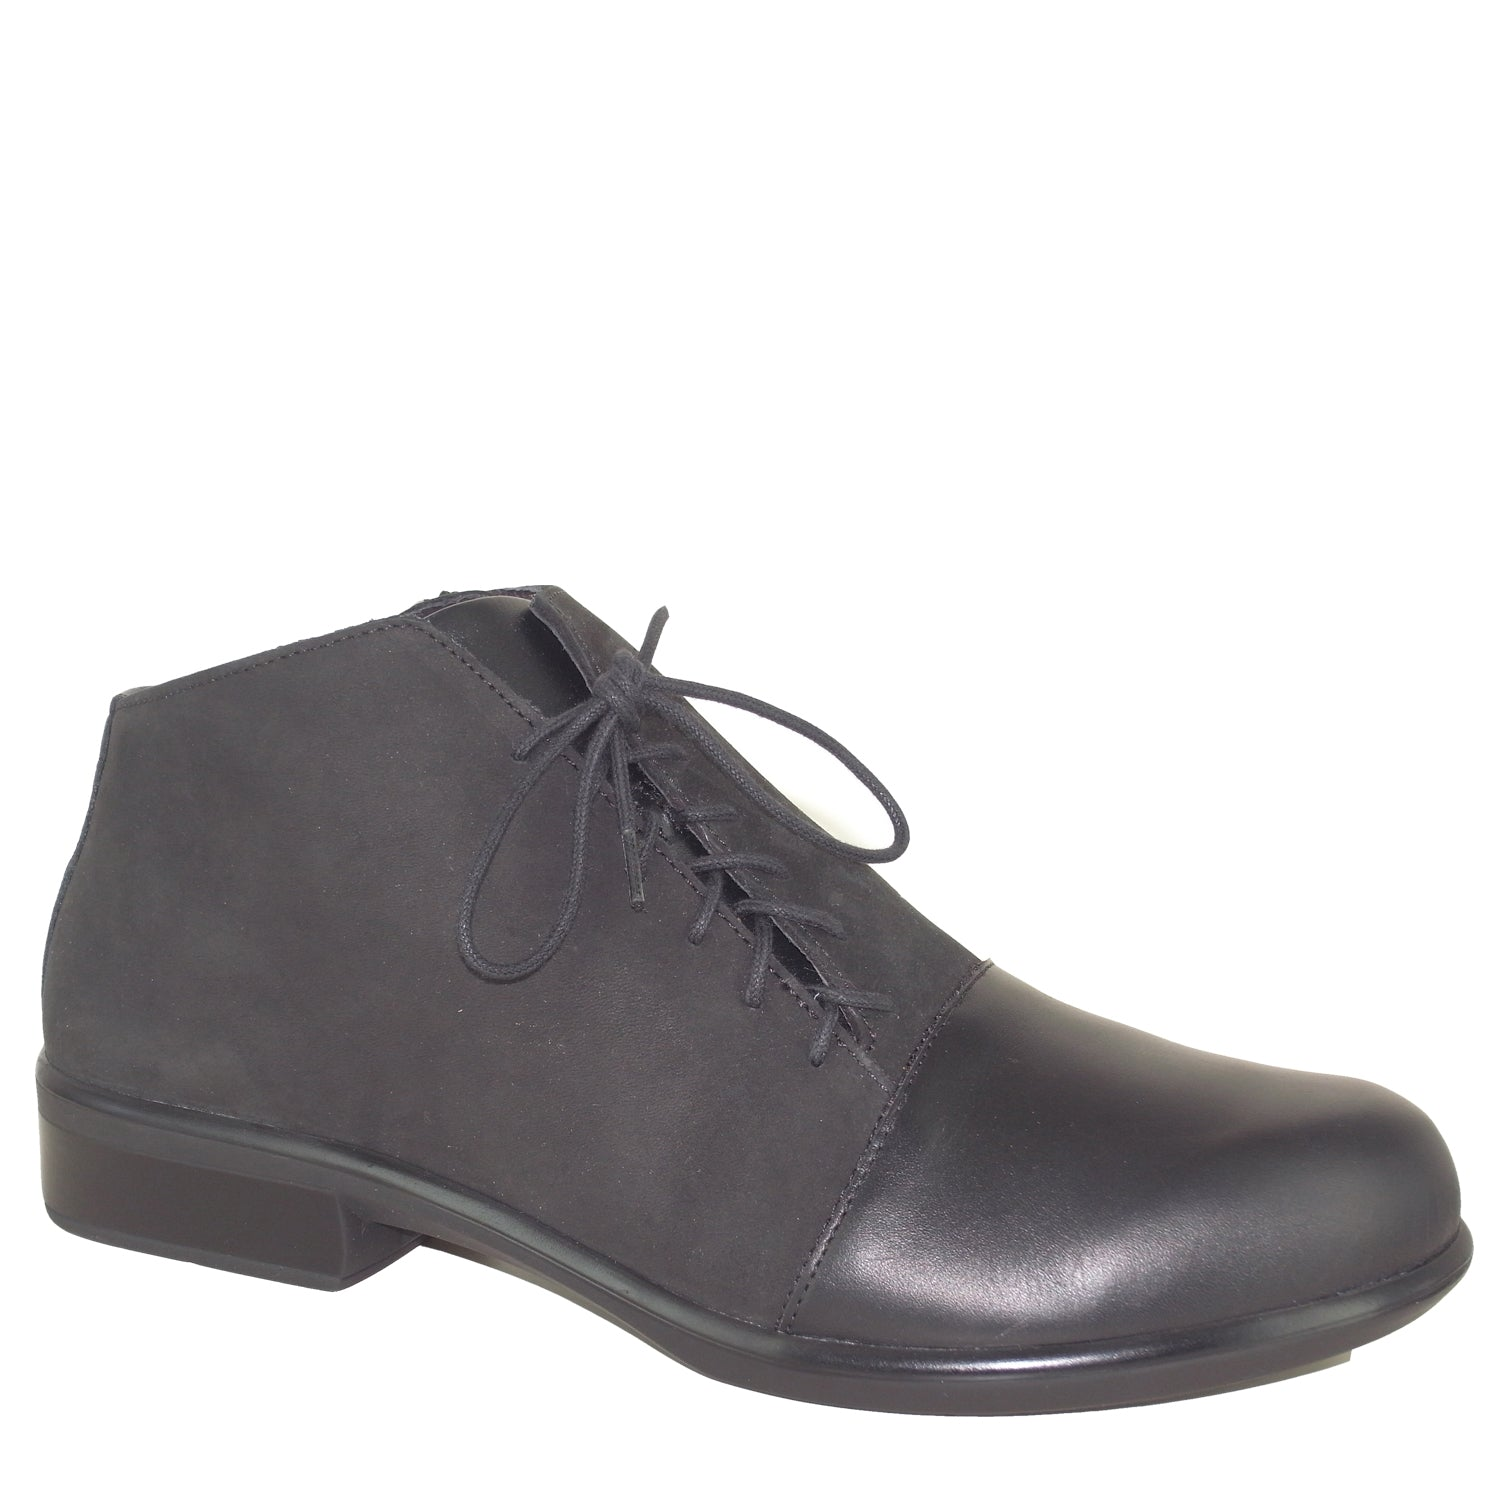 276e64553638 Shop Naot Online - Ian s Shoes for Women